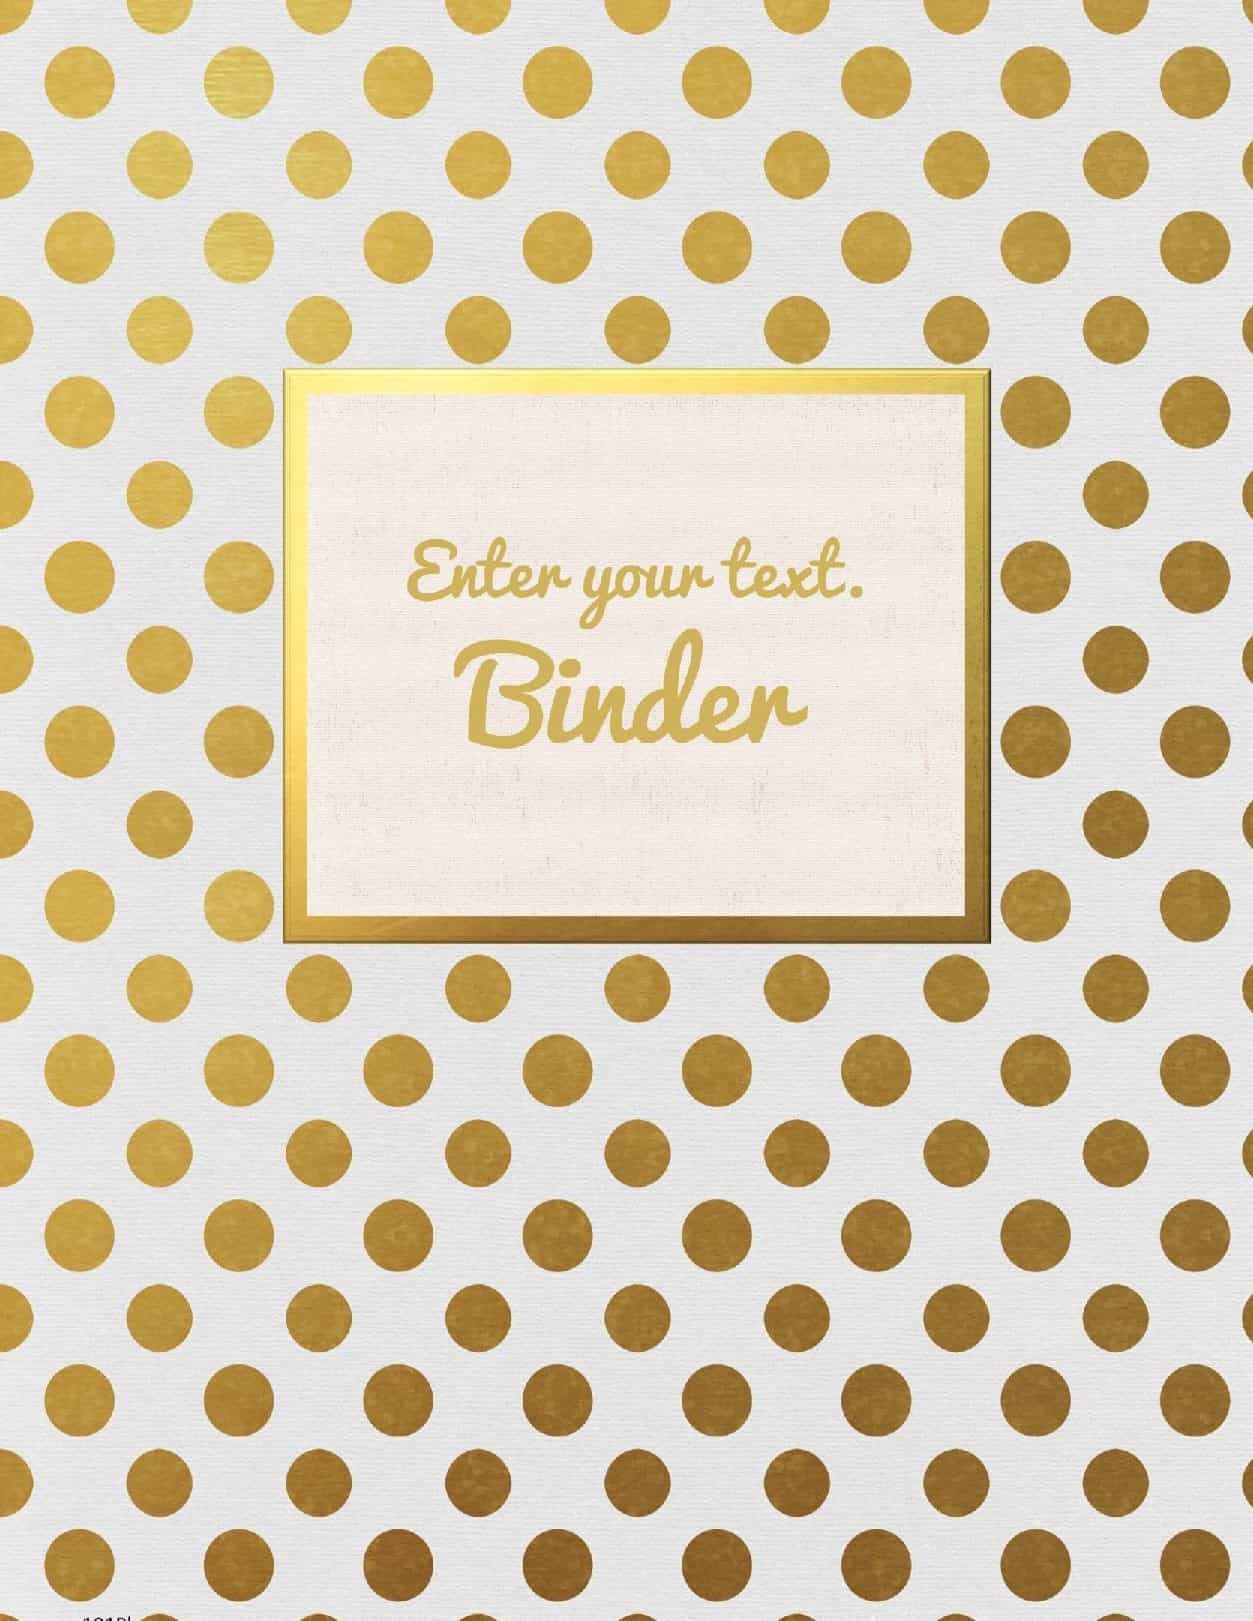 Free Binder Cover Templates | Customize Online & Print At Home | Free! - Free Printable Binder Covers And Spines